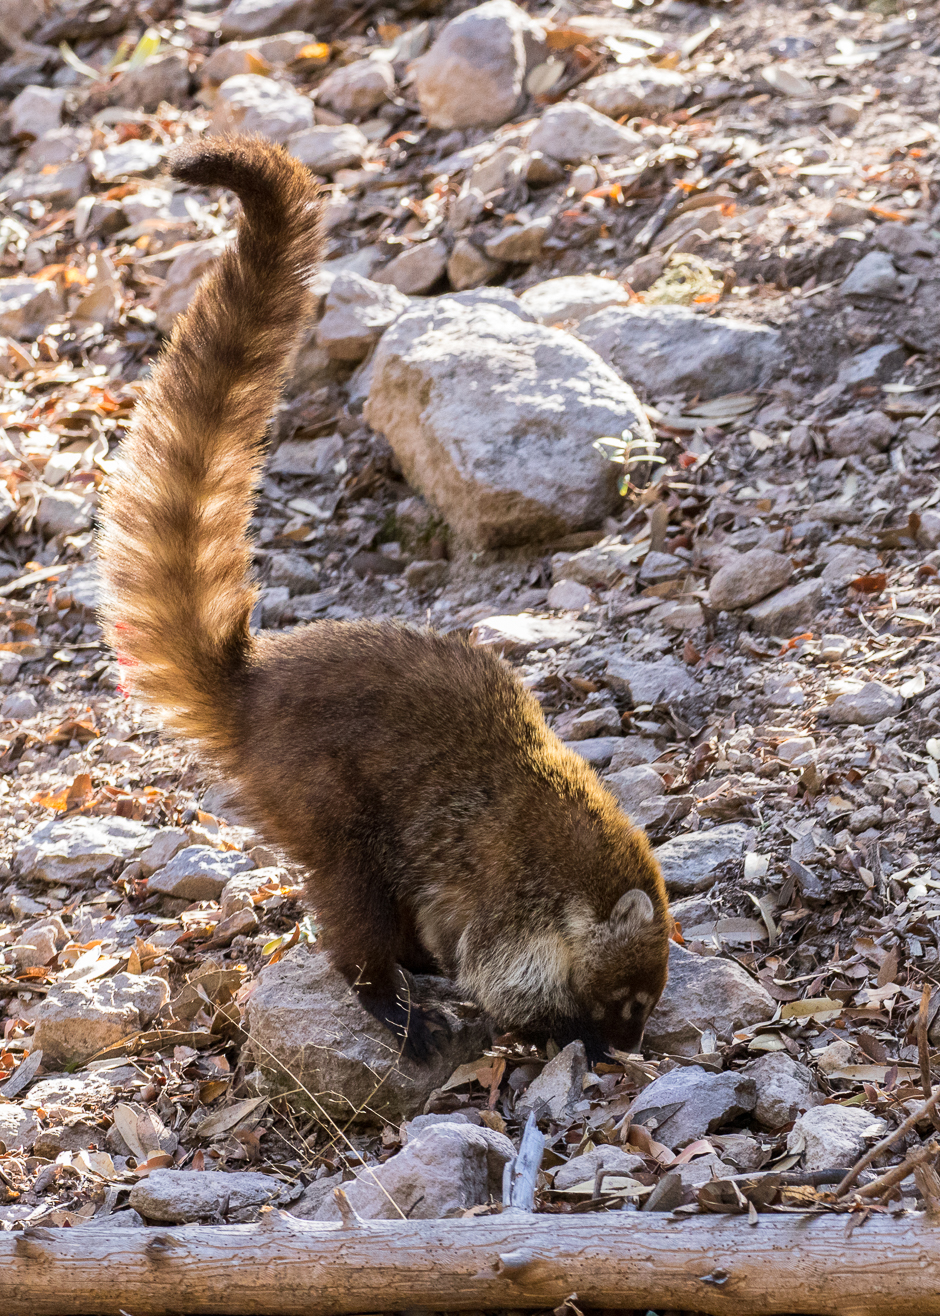 Coati in camp chiricahua nm cochise county arizona for Az game and fish draw results 2017